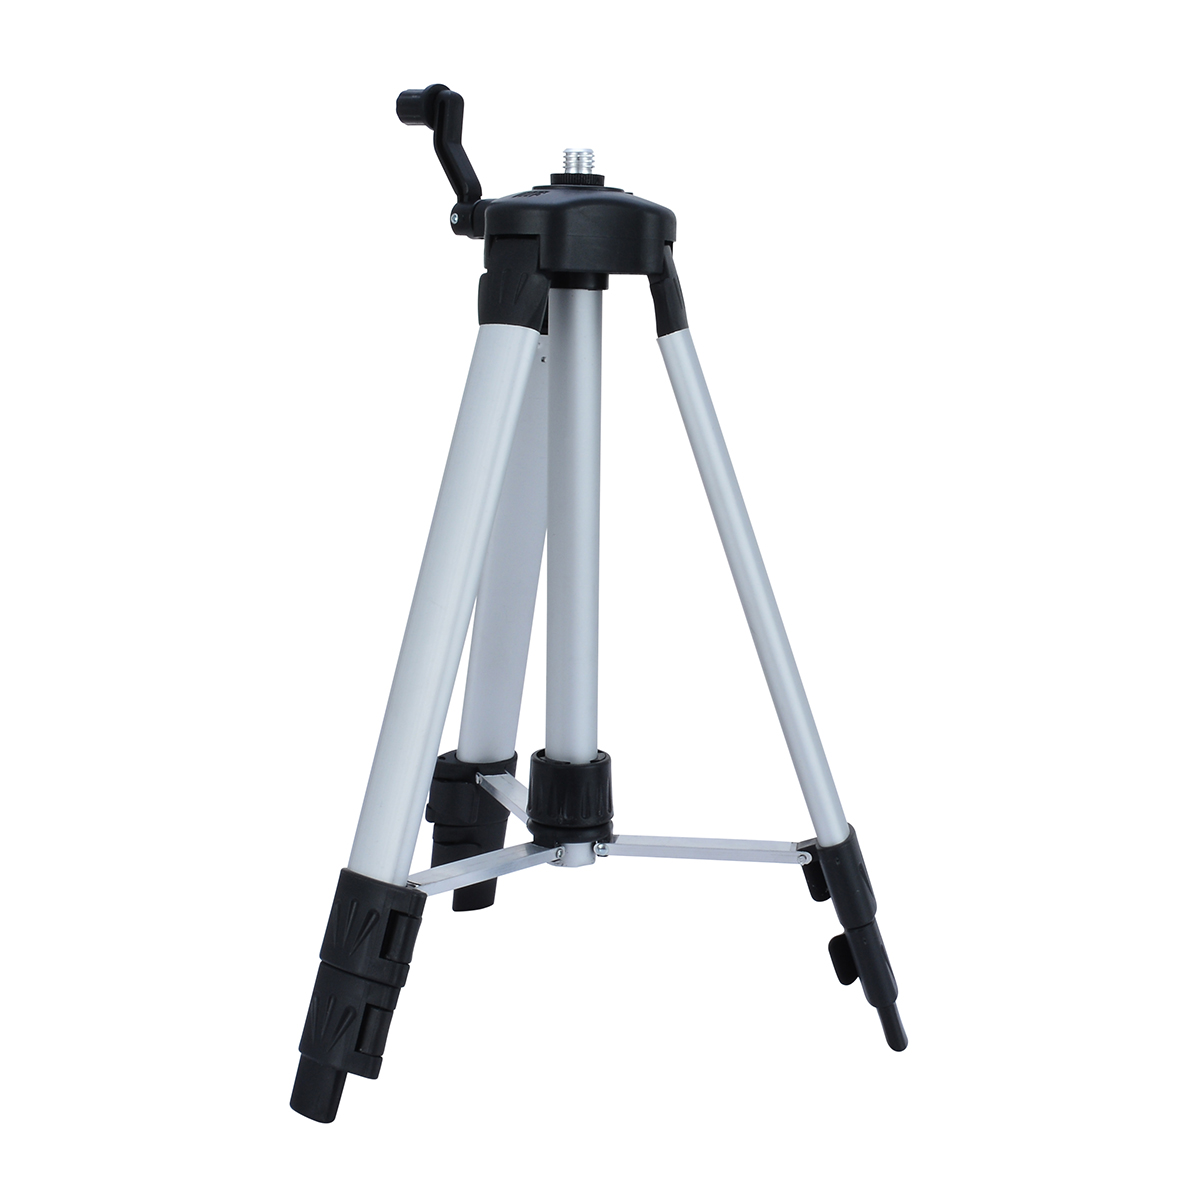 Mayitr Portable AK435 360 Degree Laser Level Tripod Self-leveling Cross Laser Level Tripod With Bag High Quality лонгслив printio багира